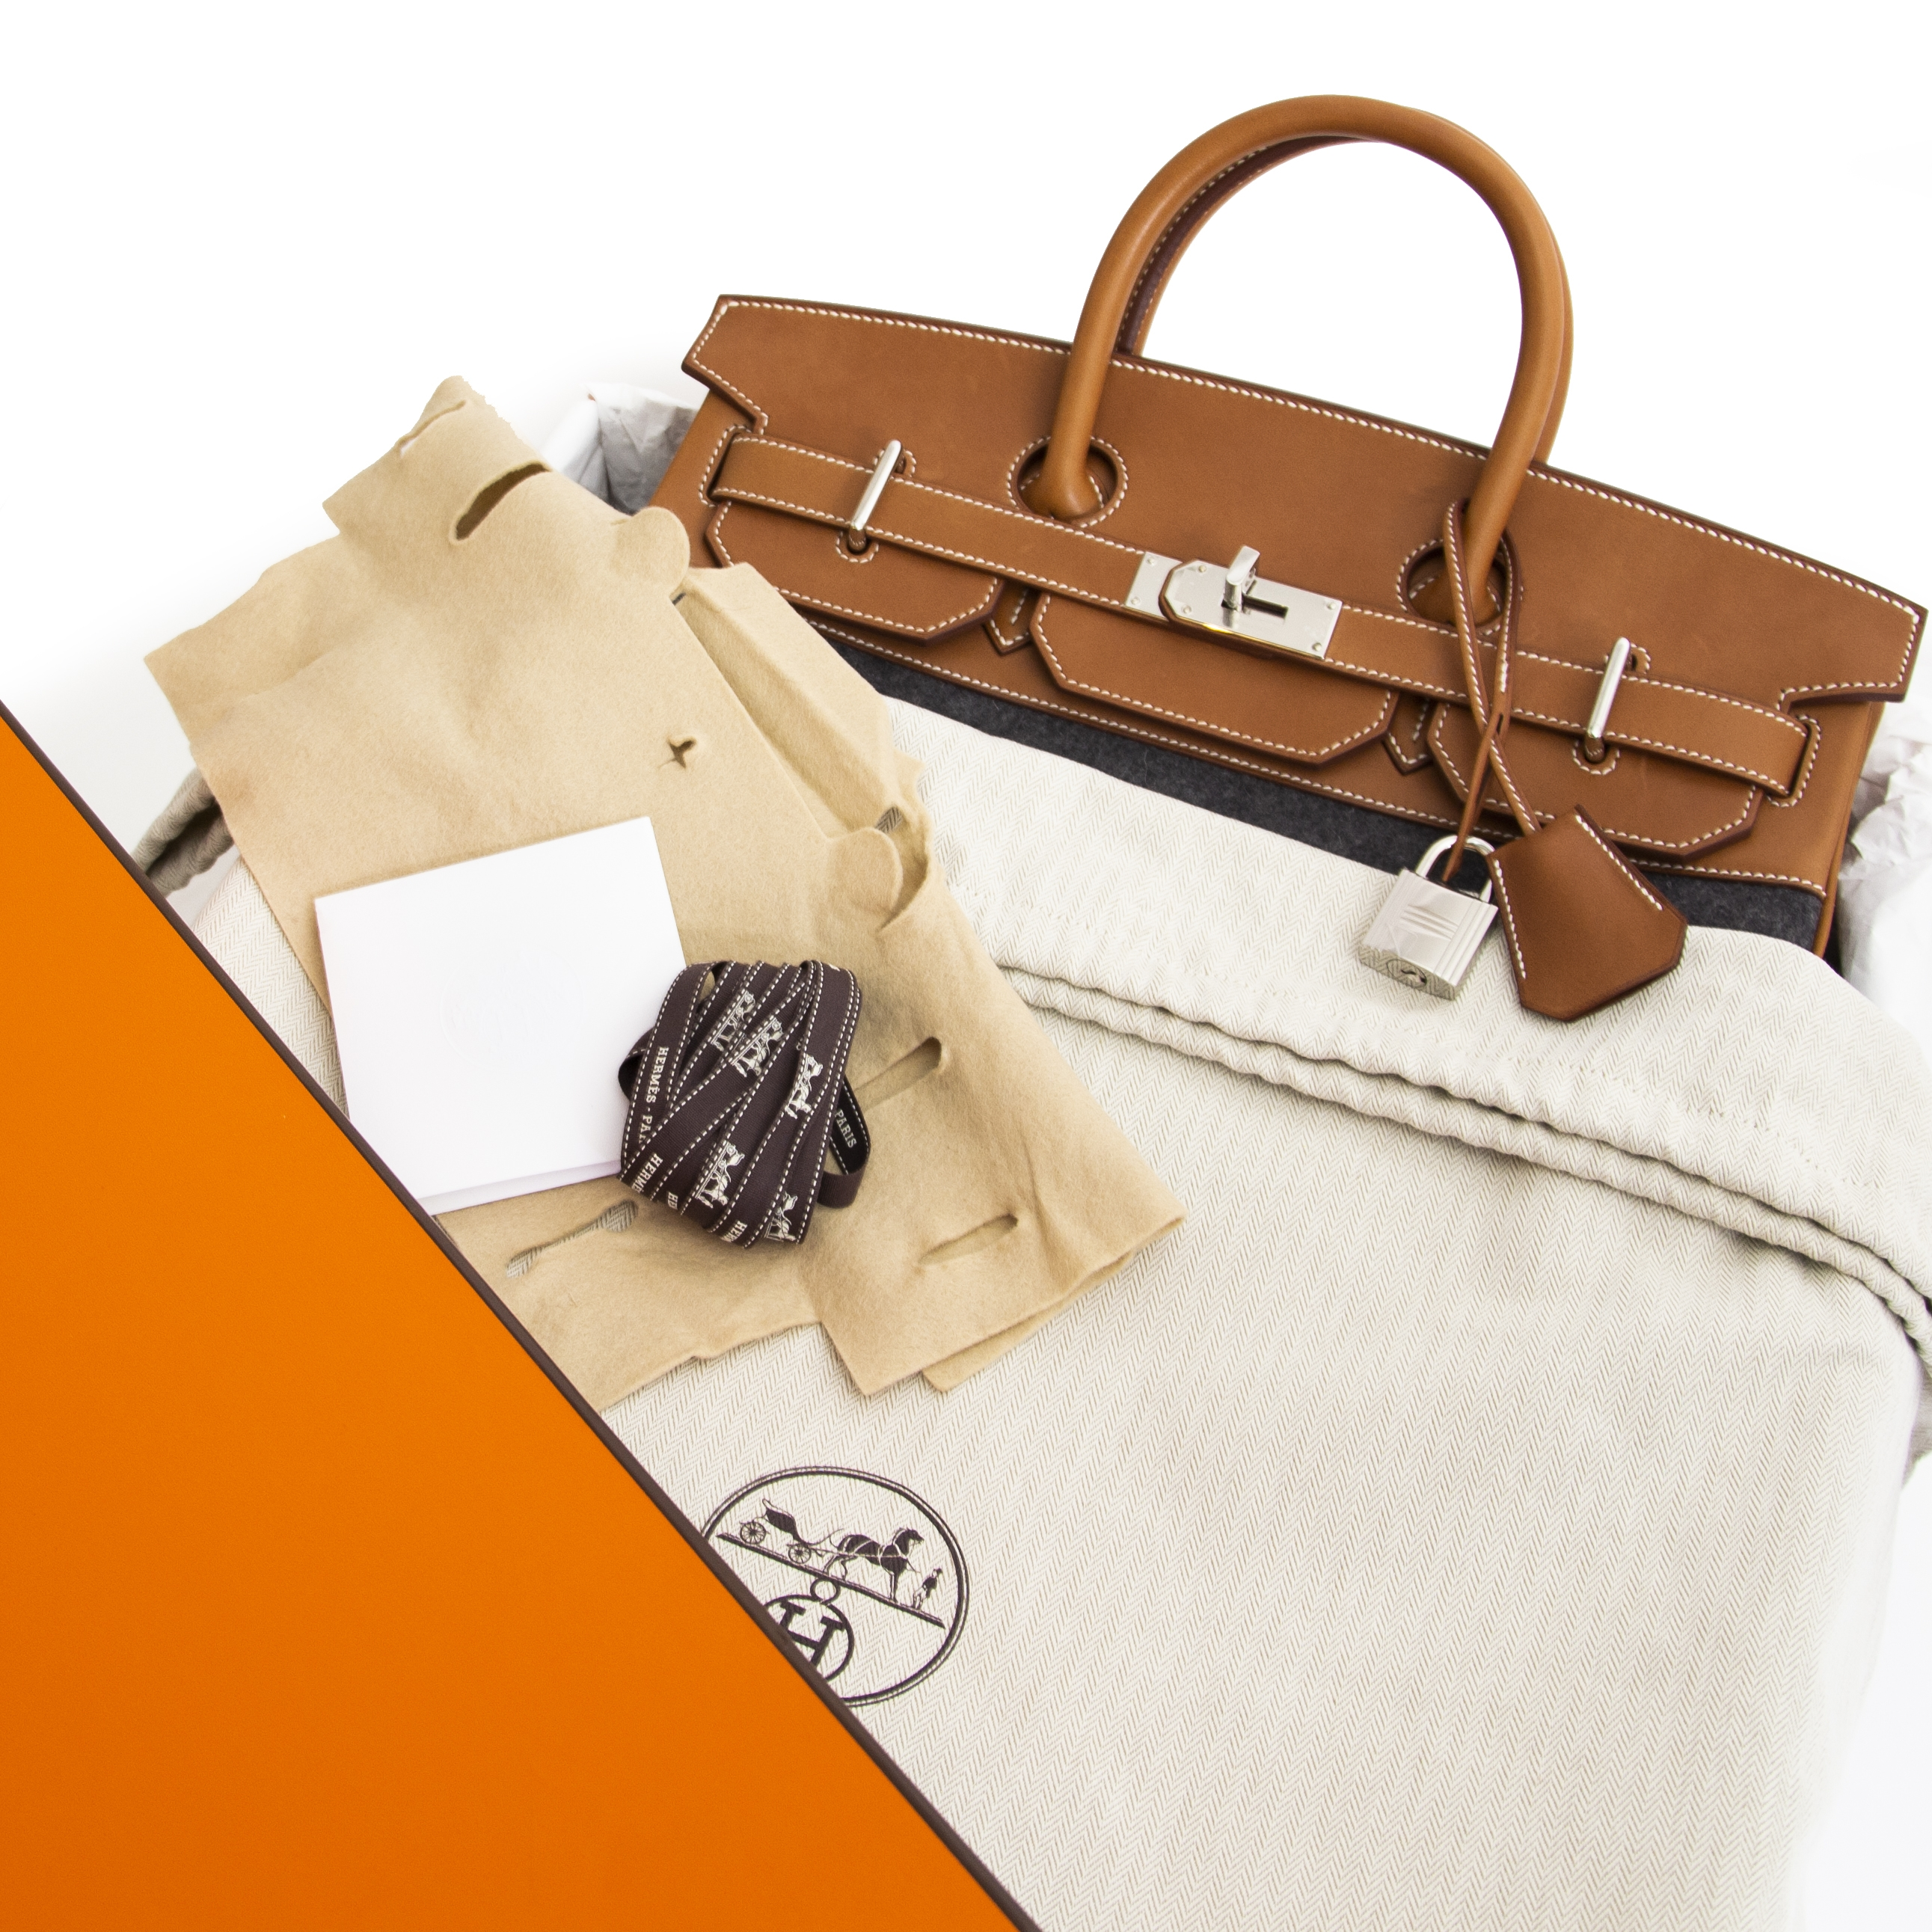 skip the list and get your Hermès Haut à Courroies HAC 40cm Feutre / Veau Barenia PHW right now!